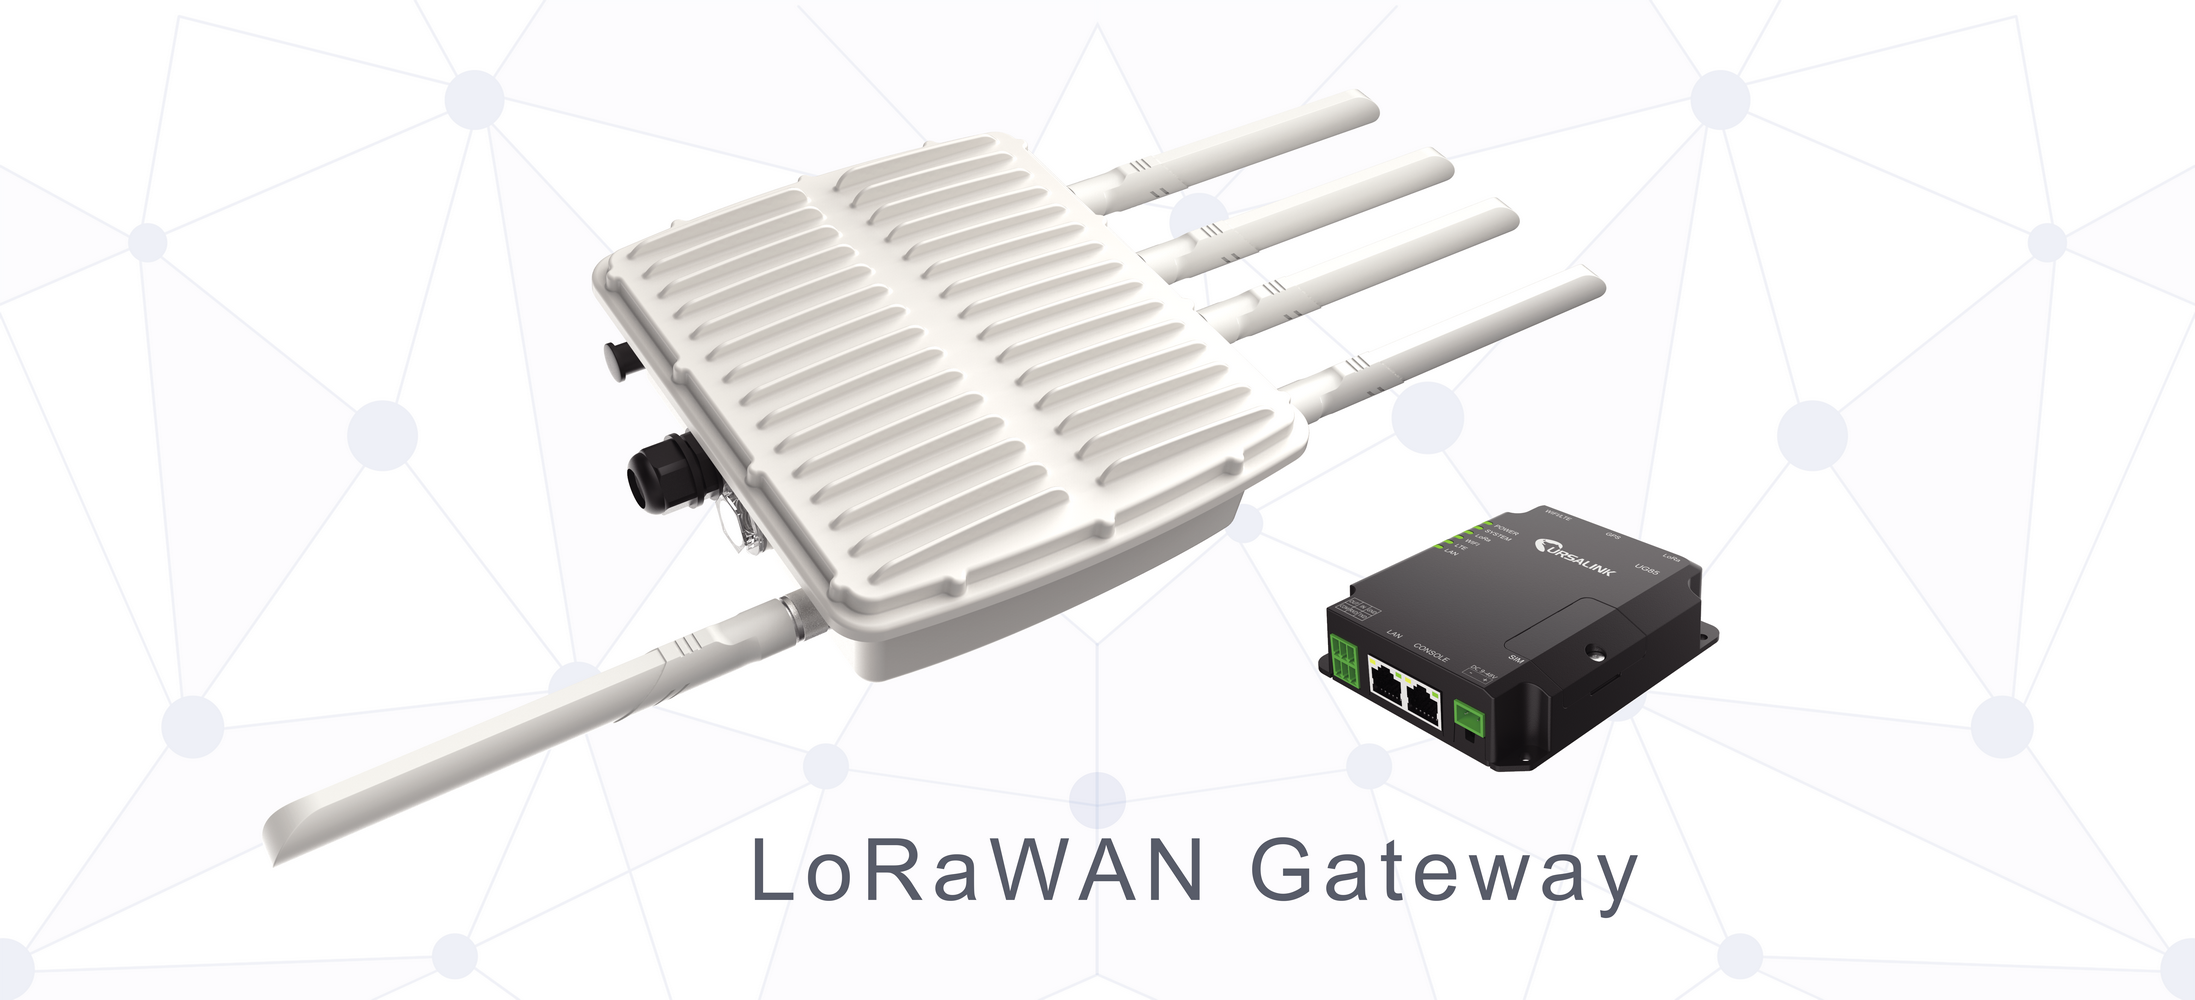 LoRaWAN Gateway for Internet of Things